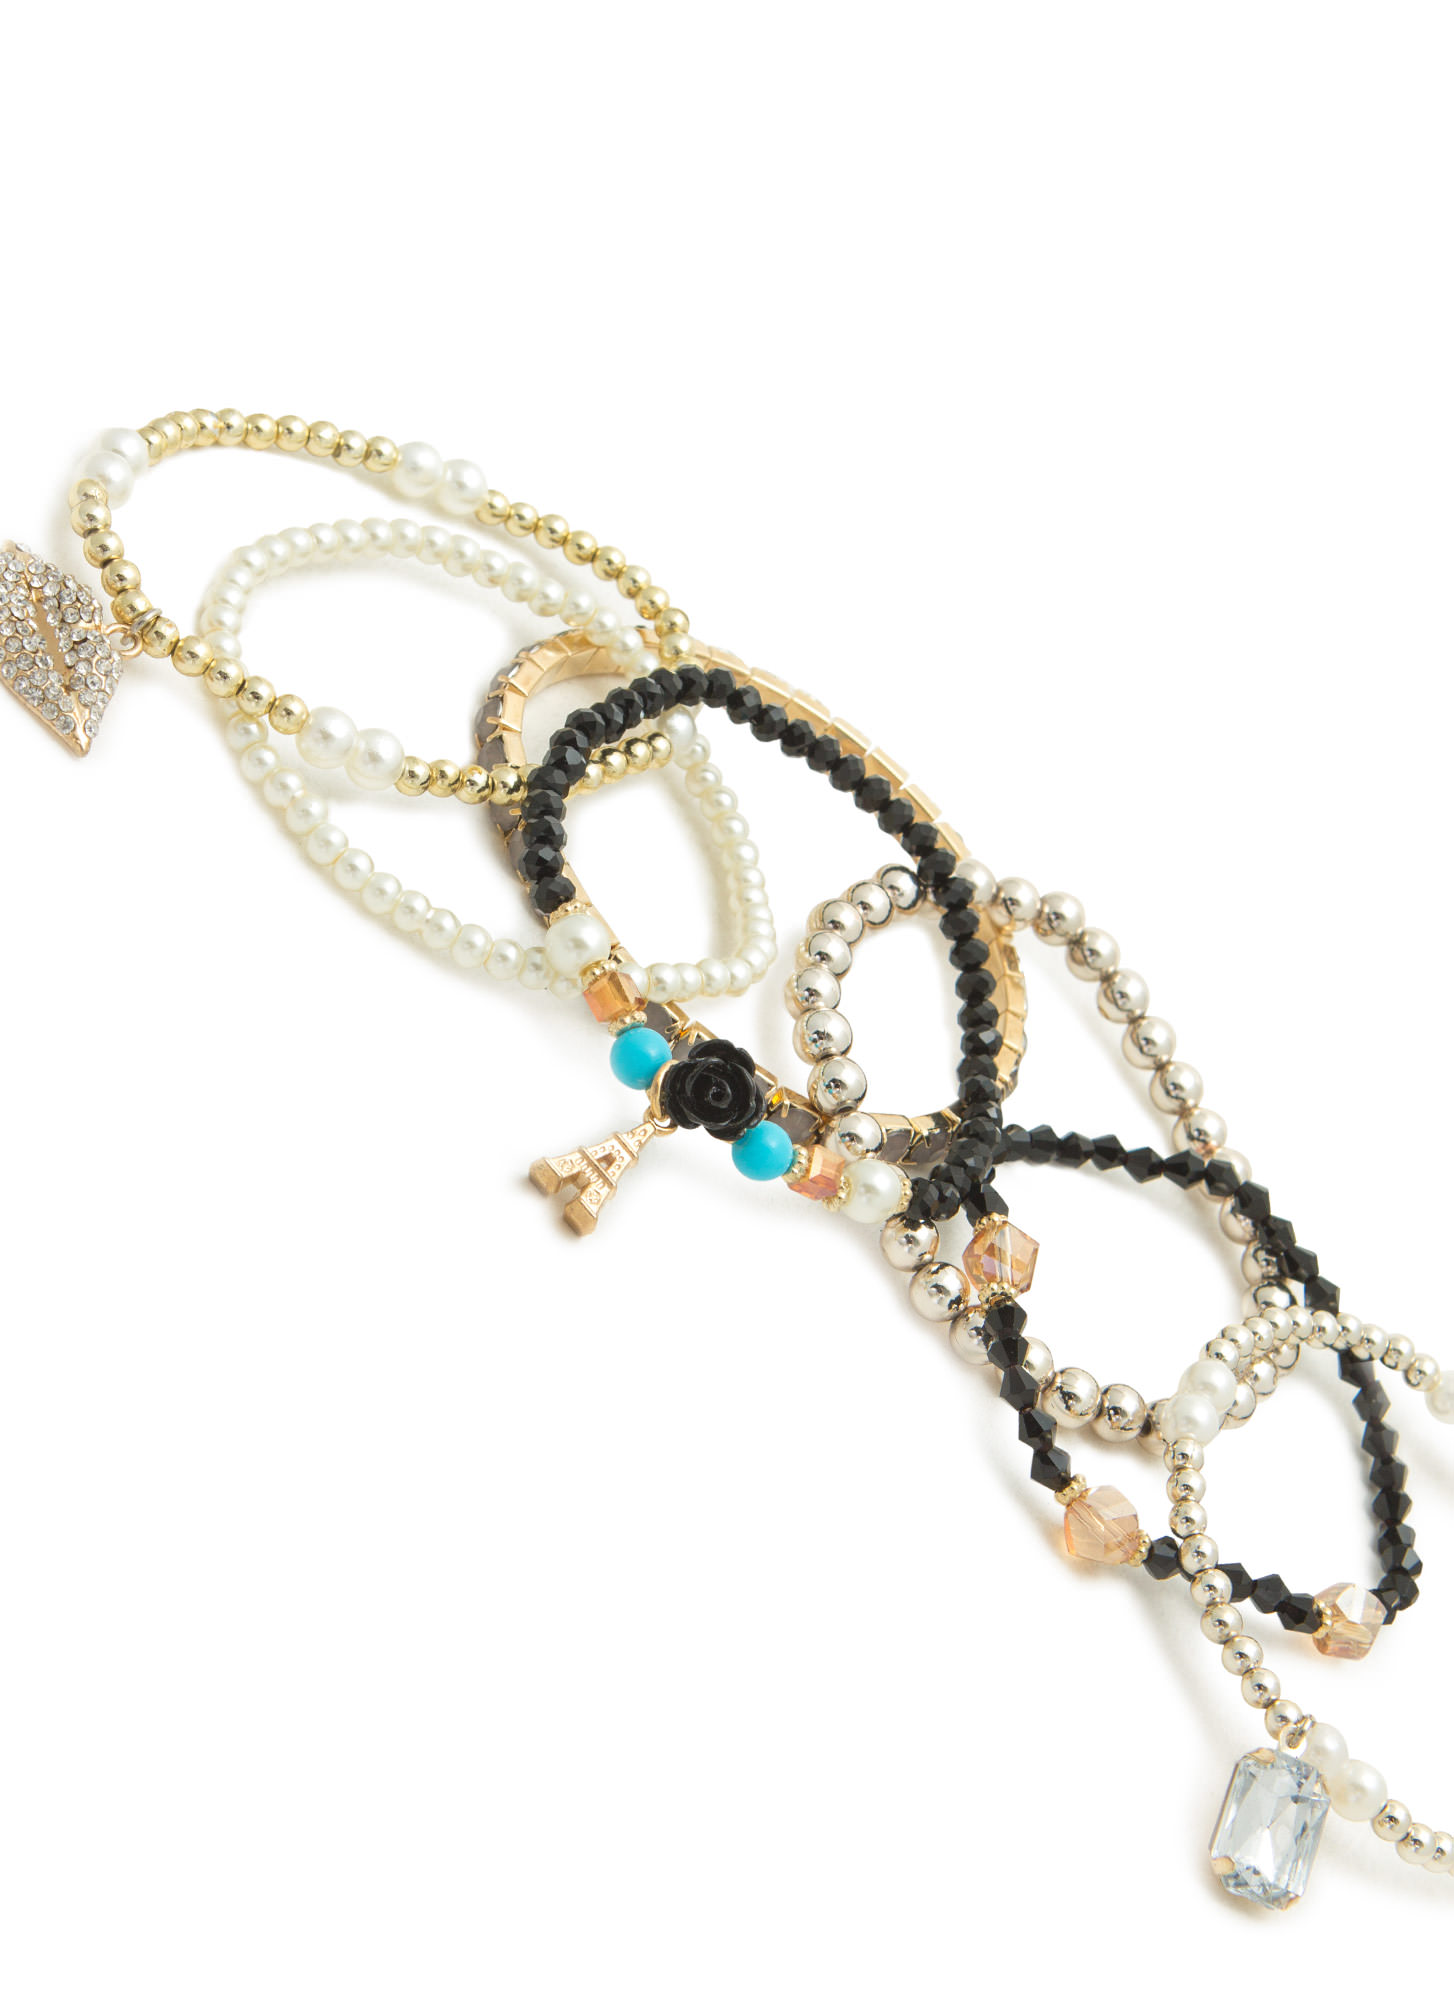 Beaded 'N Bejeweled Paris Charm Bracelet Set BLACKGOLD